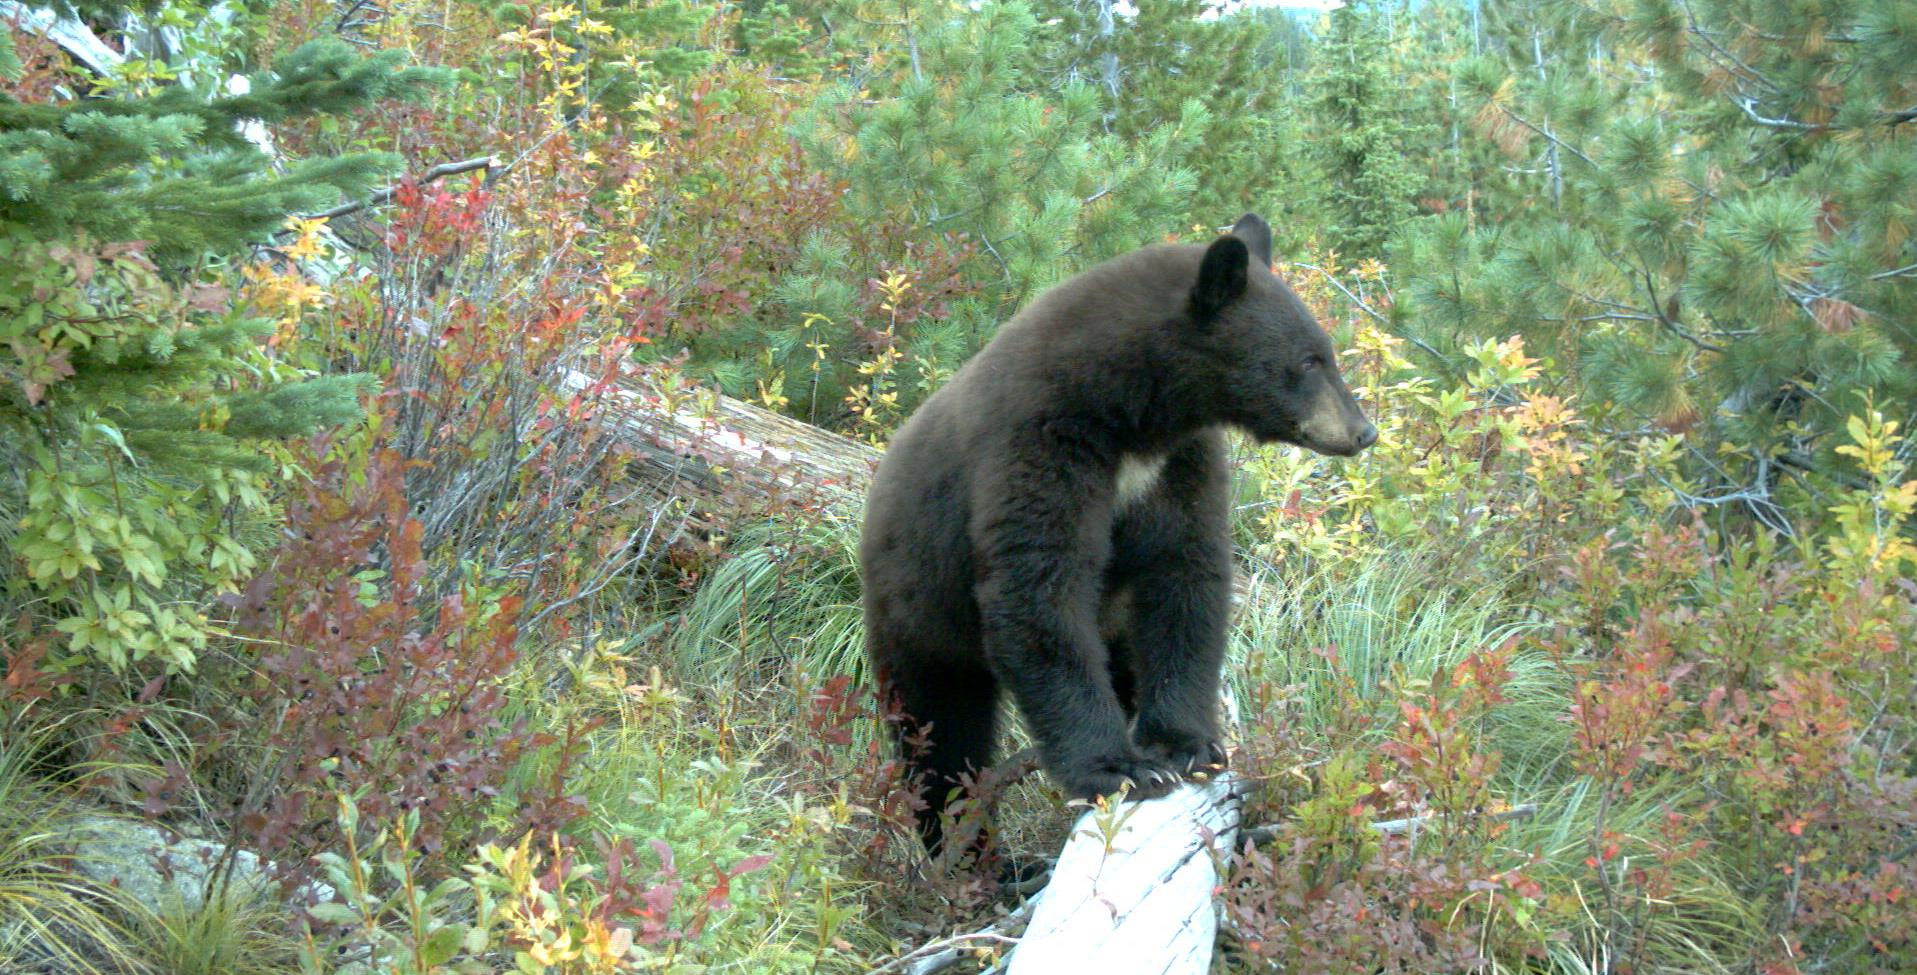 Black bear with huckleberries in the background